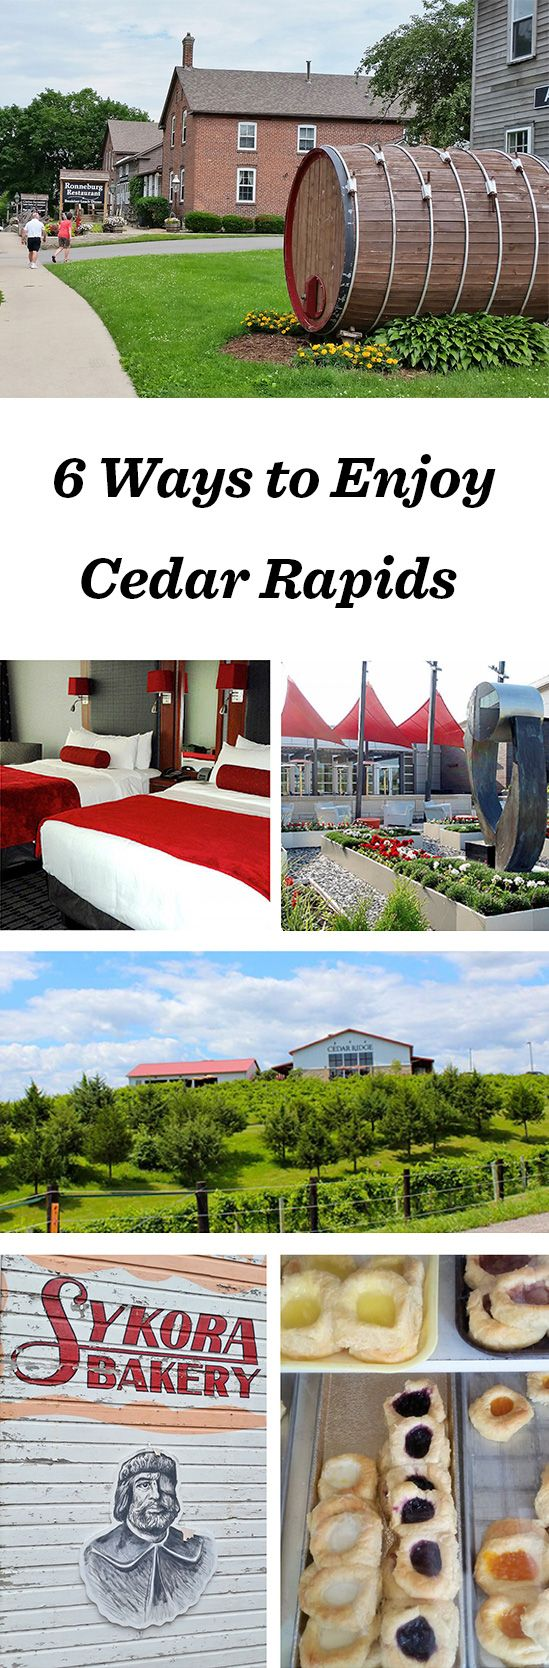 If you're in Cedar Rapids, get ready for cultural immersion! From Czech Village to the outlying Amana Colonies—with plenty of food, drink and market stops along the way—the second-largest city in Iowa is an eye-opening, mouth-watering destination. Story: http://www.midwestliving.com/blog/travel/6-ways-to-enjoy-cedar-rapids-iowa